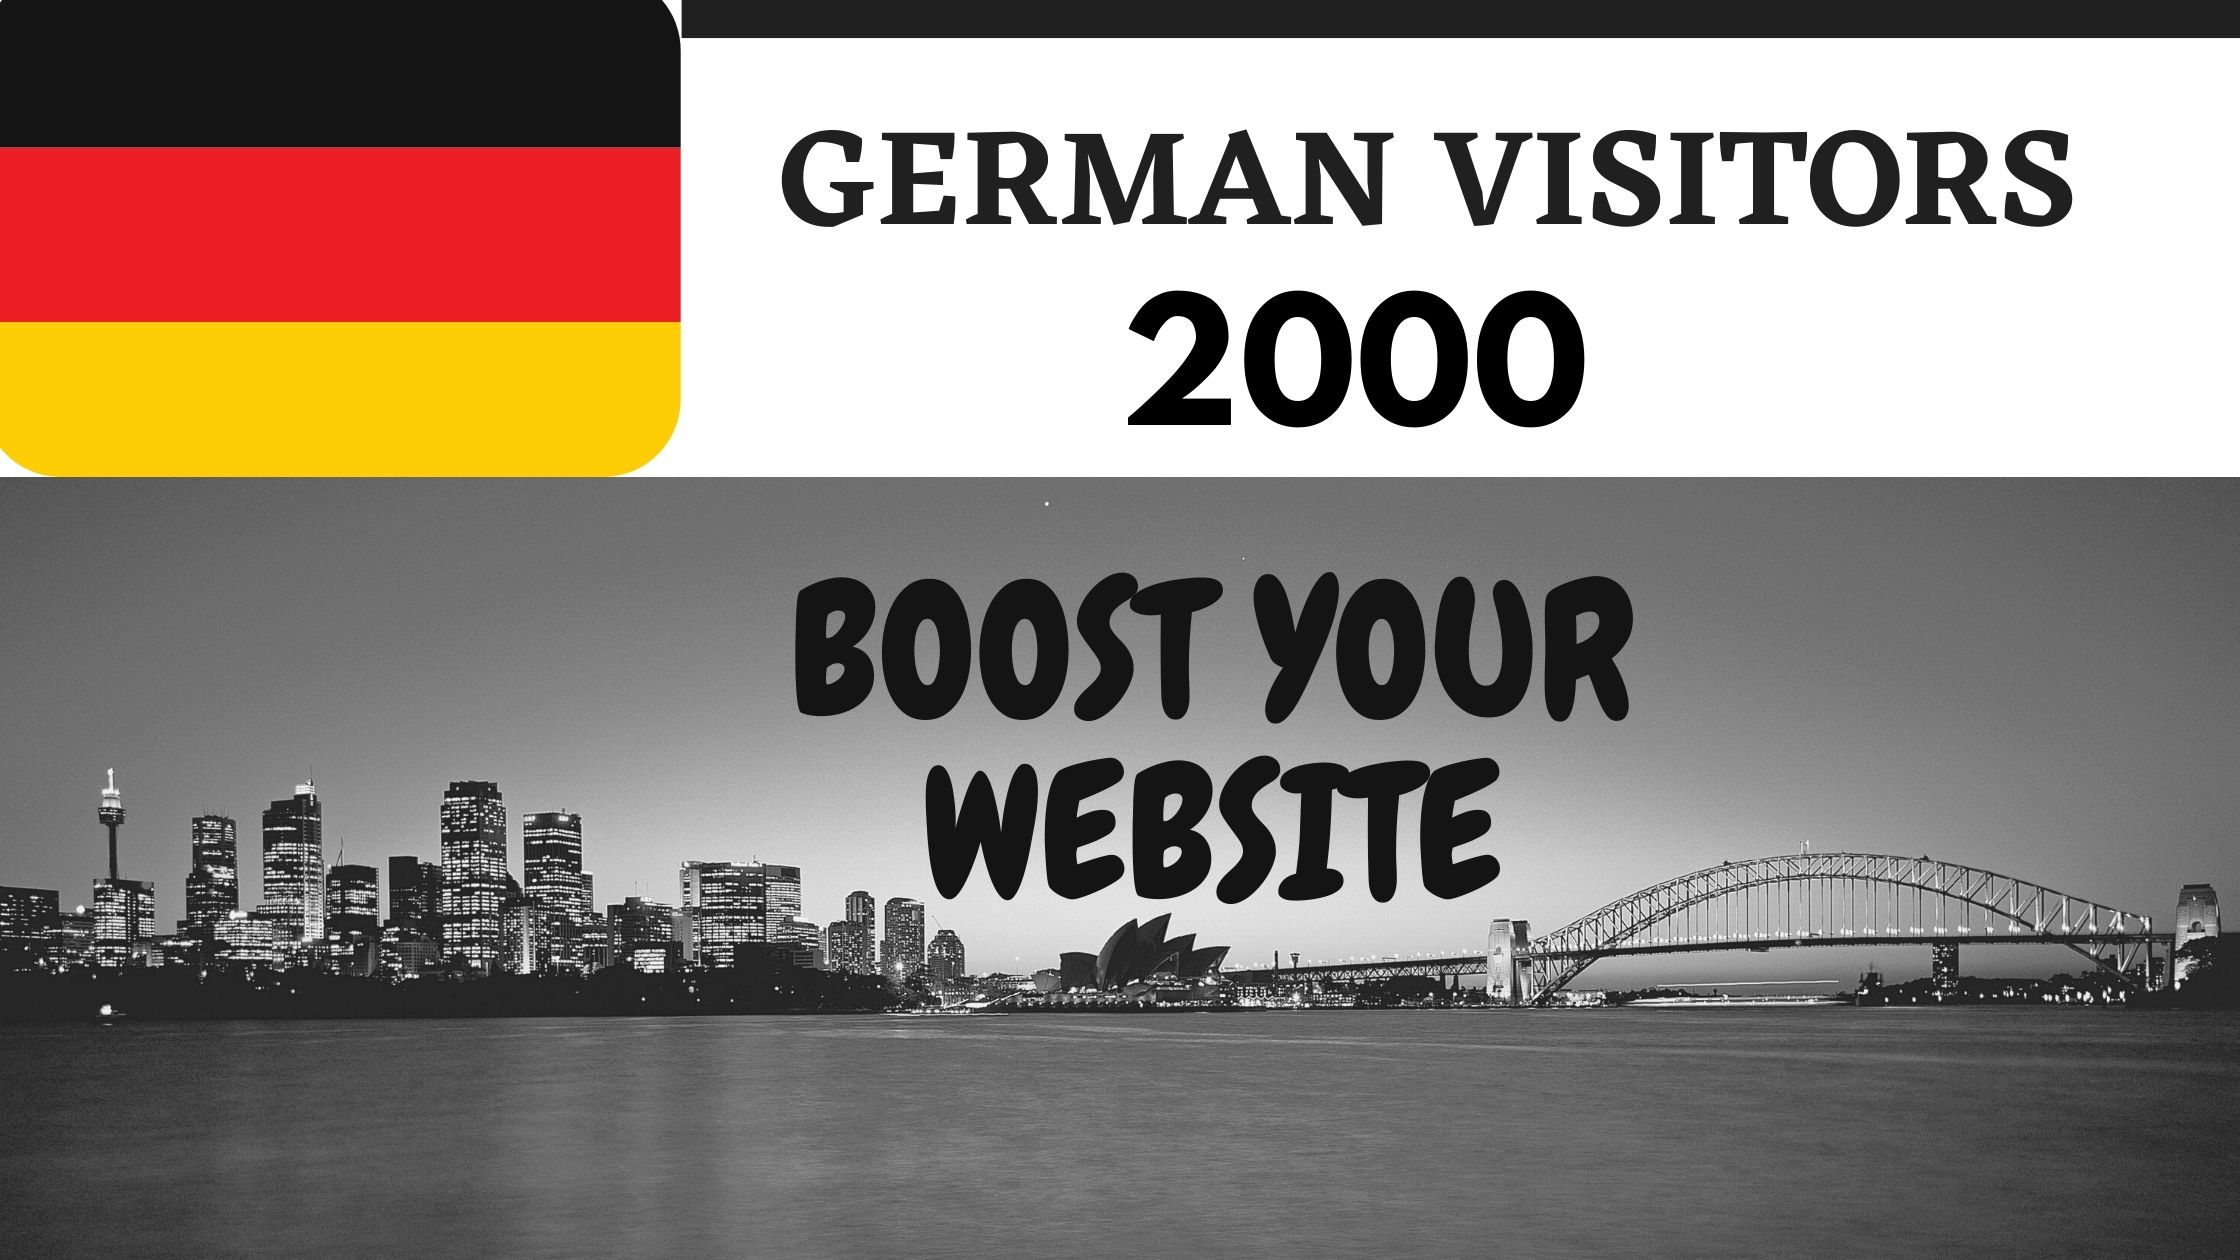 2000 German web traffic for boost your website